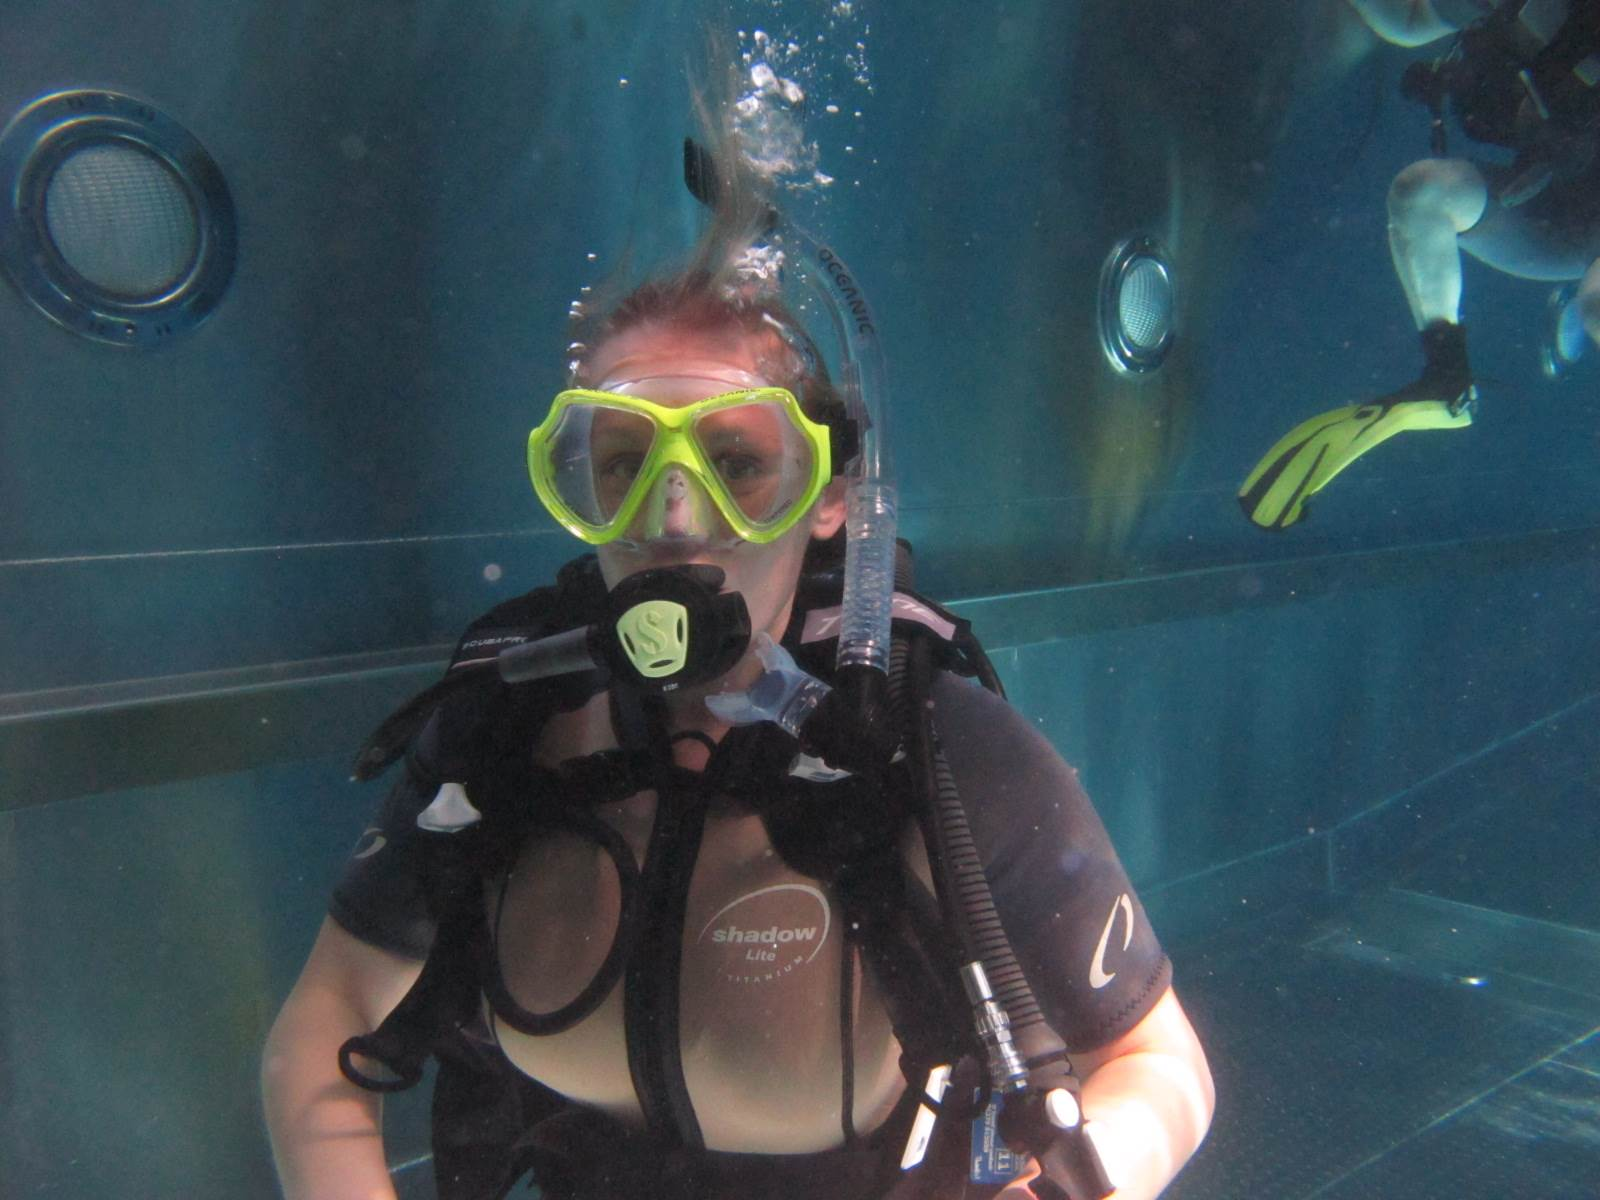 PADI Scuba lessons in our Bishop's Stortford dive pool